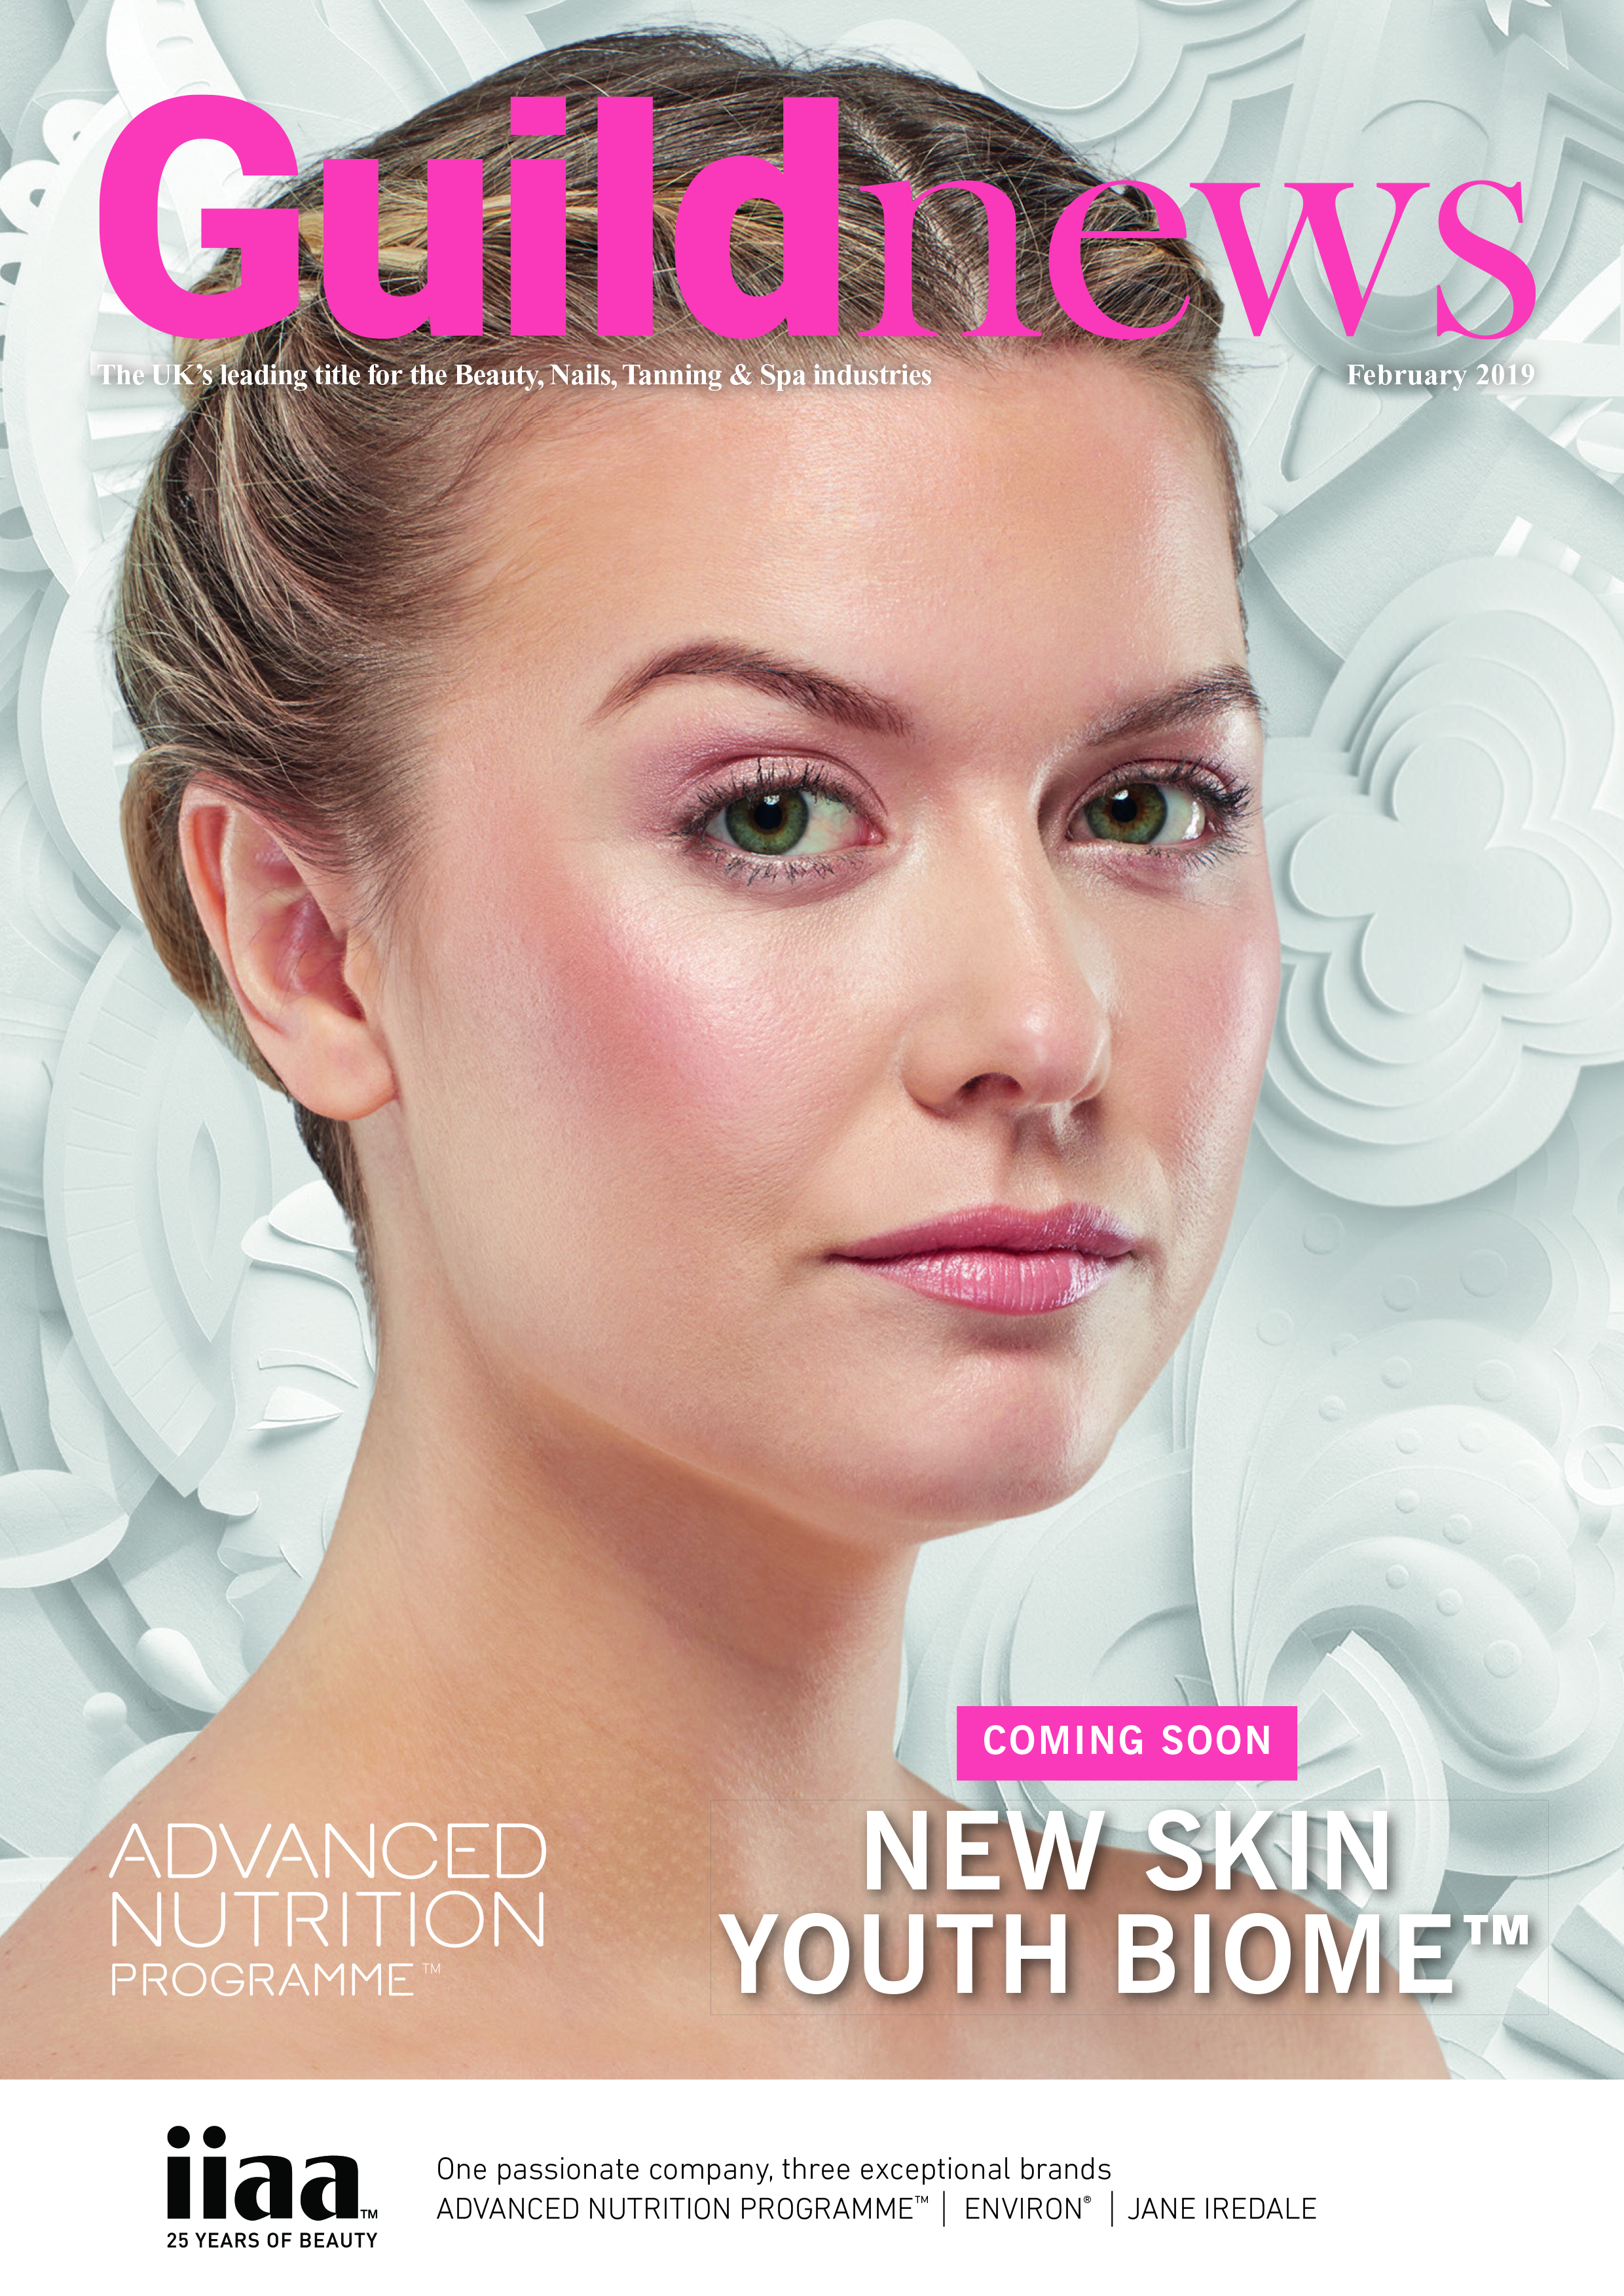 HOT OFF THE PRESS! Read All About Icon Beauty In The Latest Edition Of Guild News…